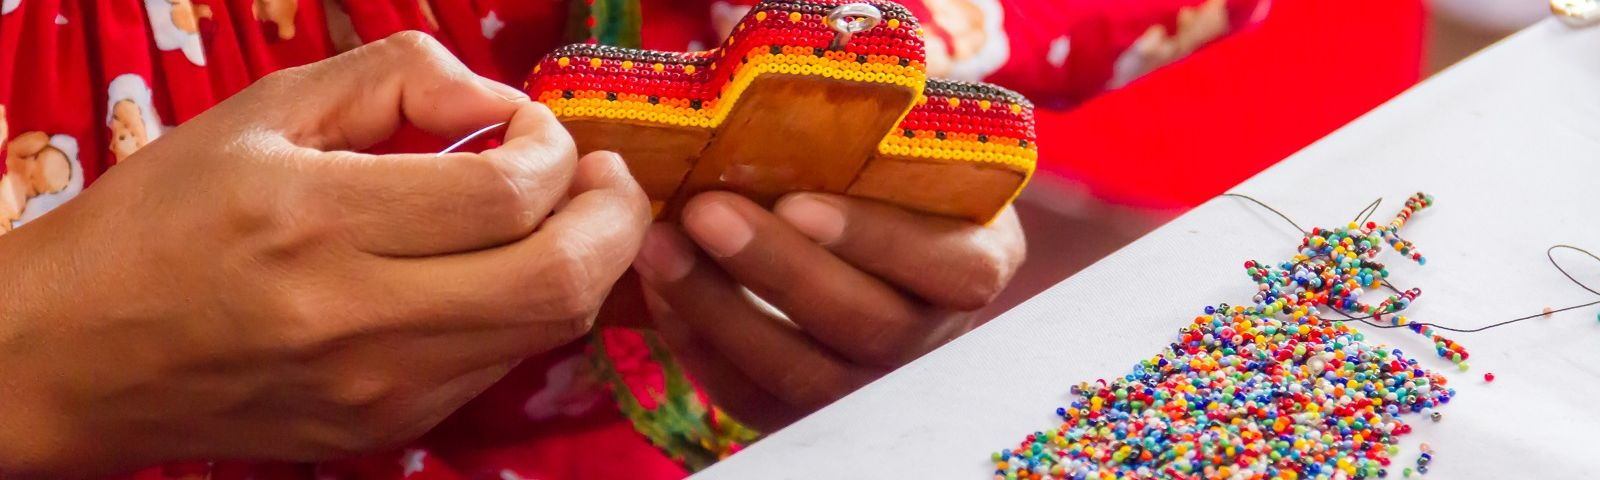 Enchanting Travels Working hands on traditional handcraft from the south of Mexico